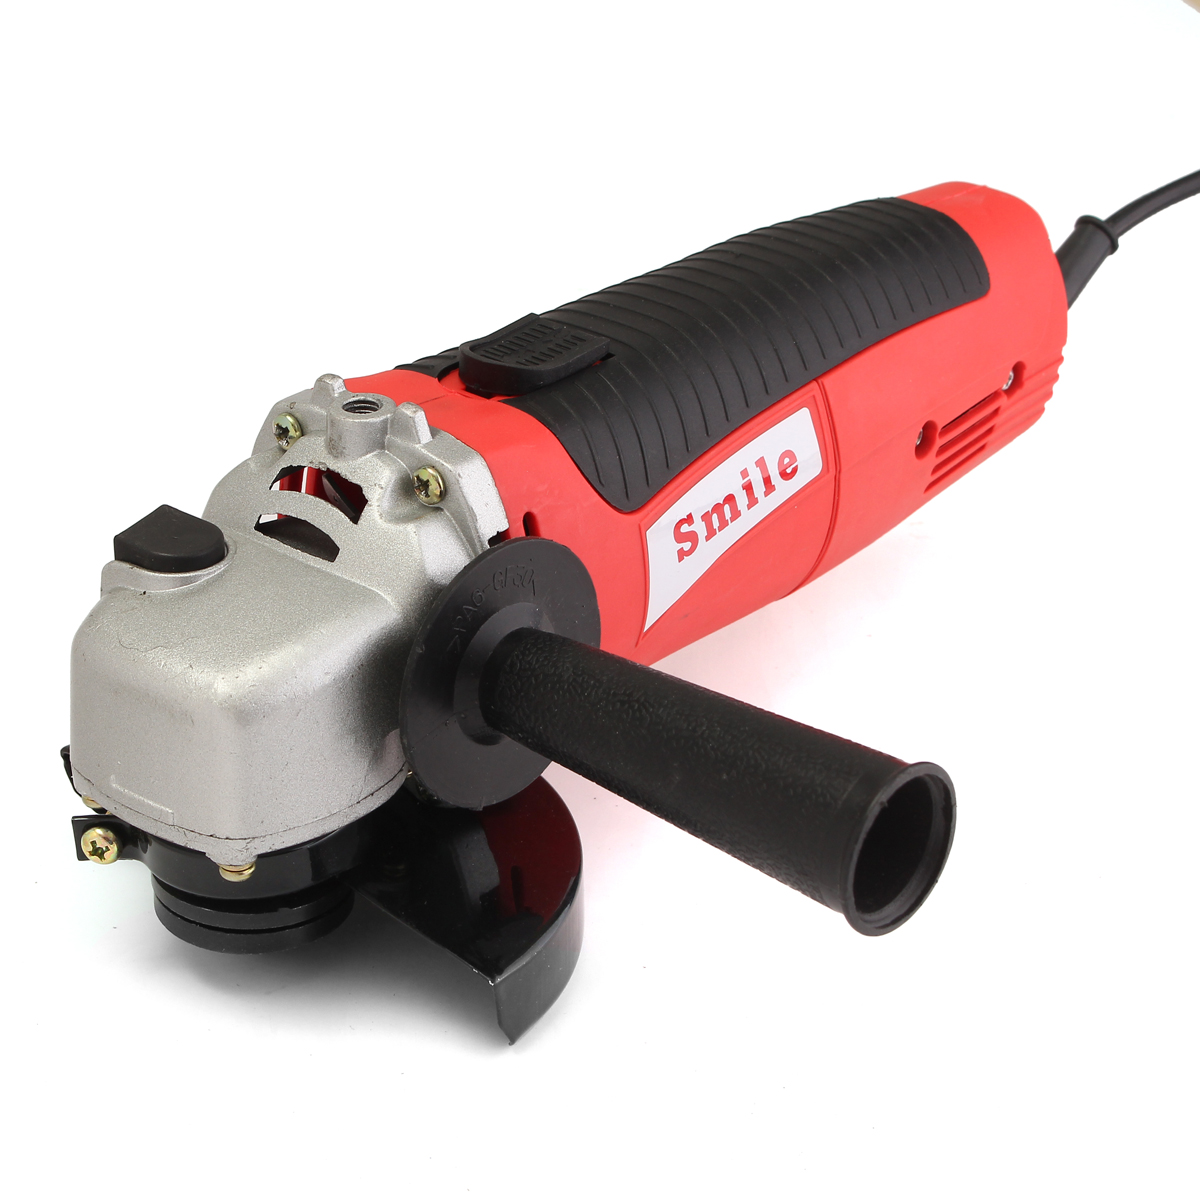 230V 850W Electric Angle Grinder 115mm 4.5 Inch Heavy D